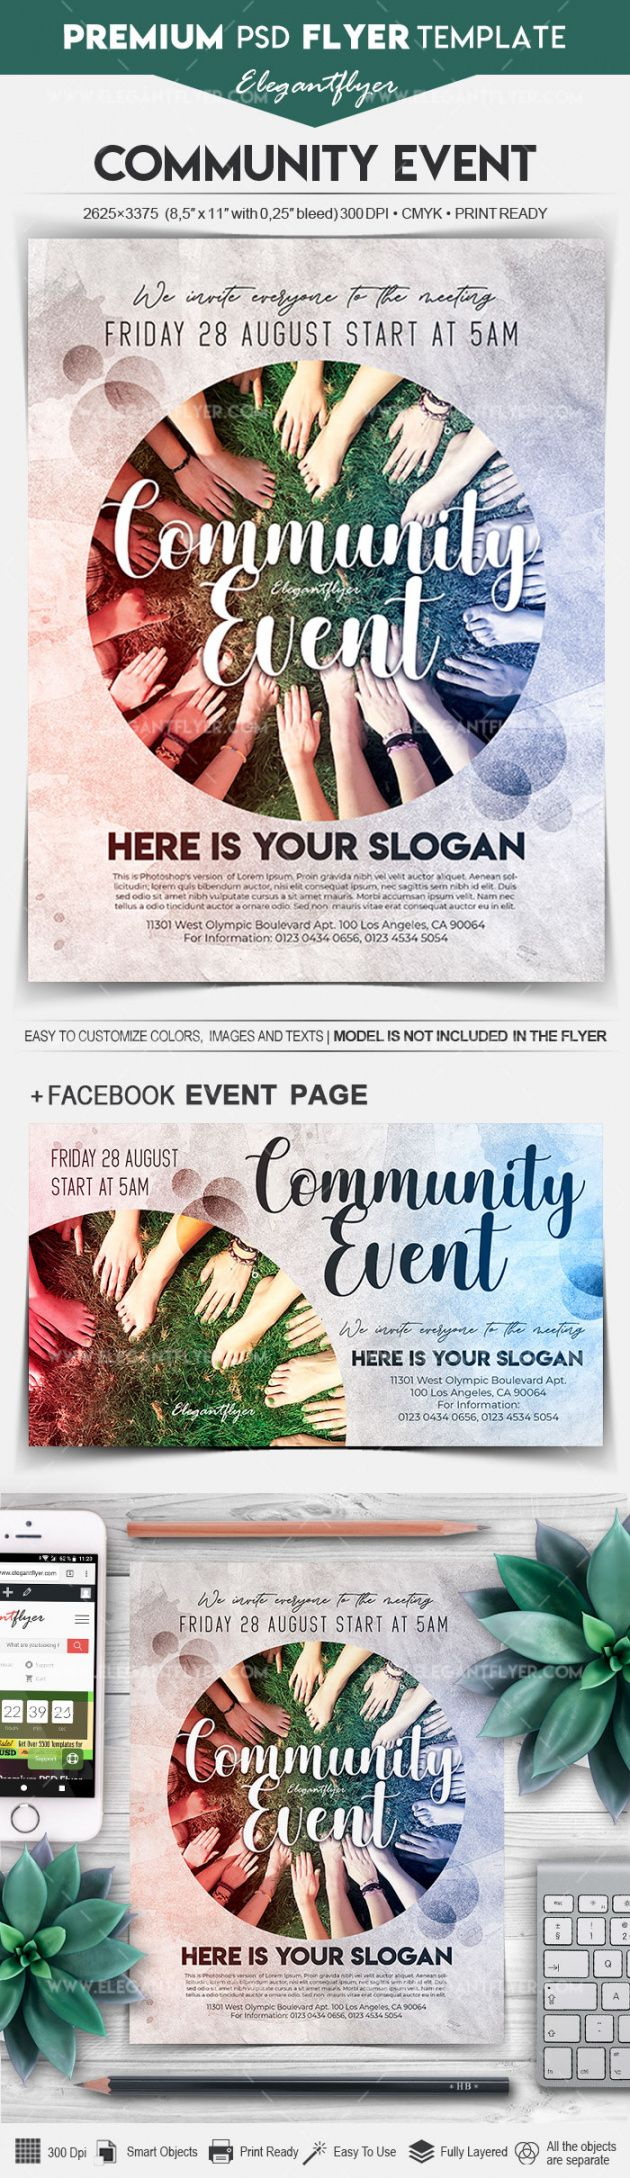 free community event  flyer psd template community event flyer template pdf